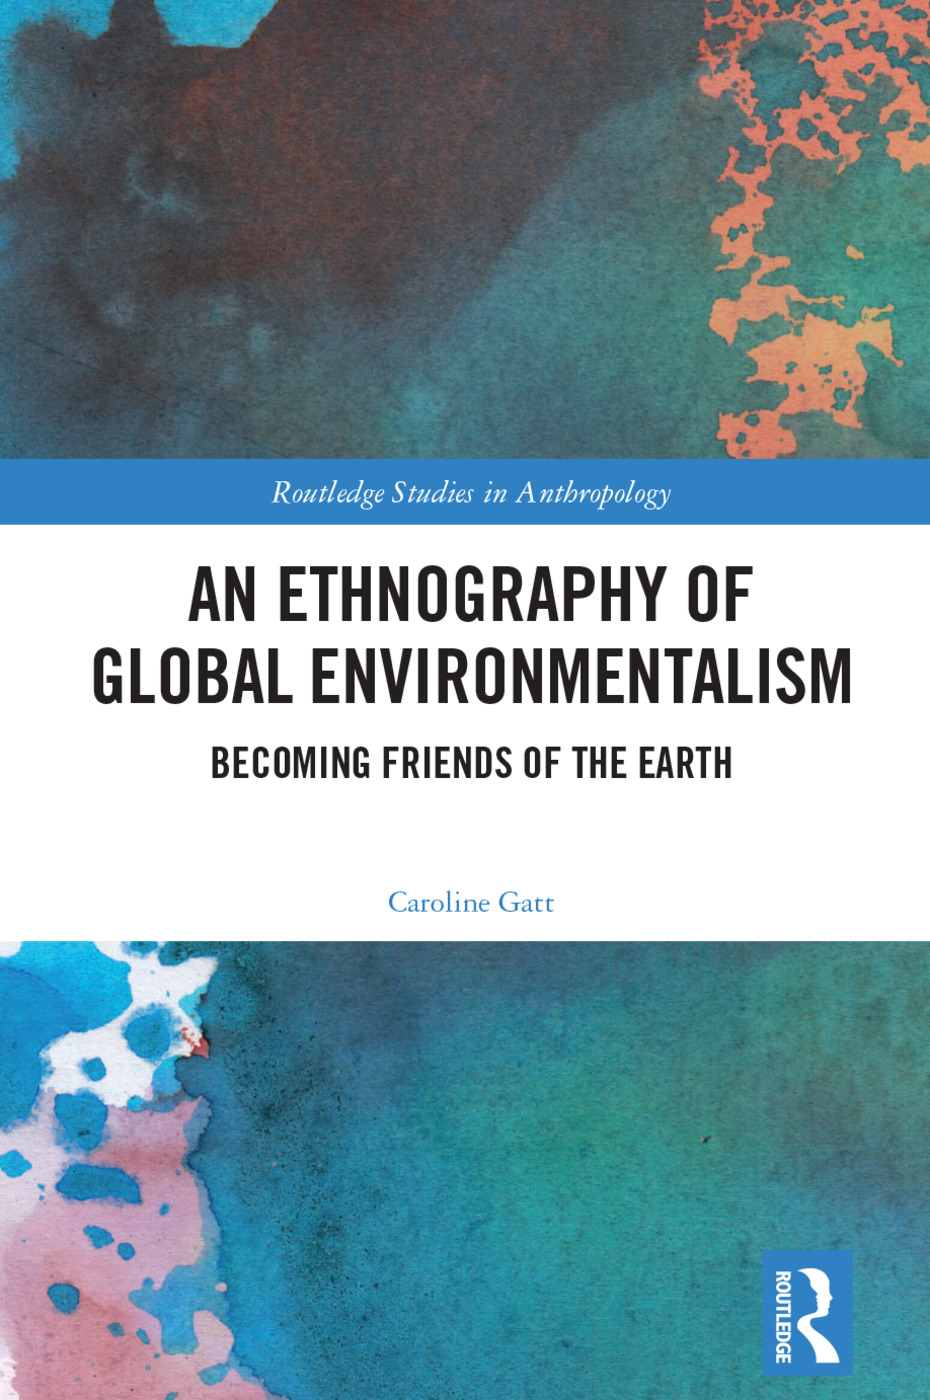 An Ethnography of Global Environmentalism: Becoming Friends of the Earth book cover